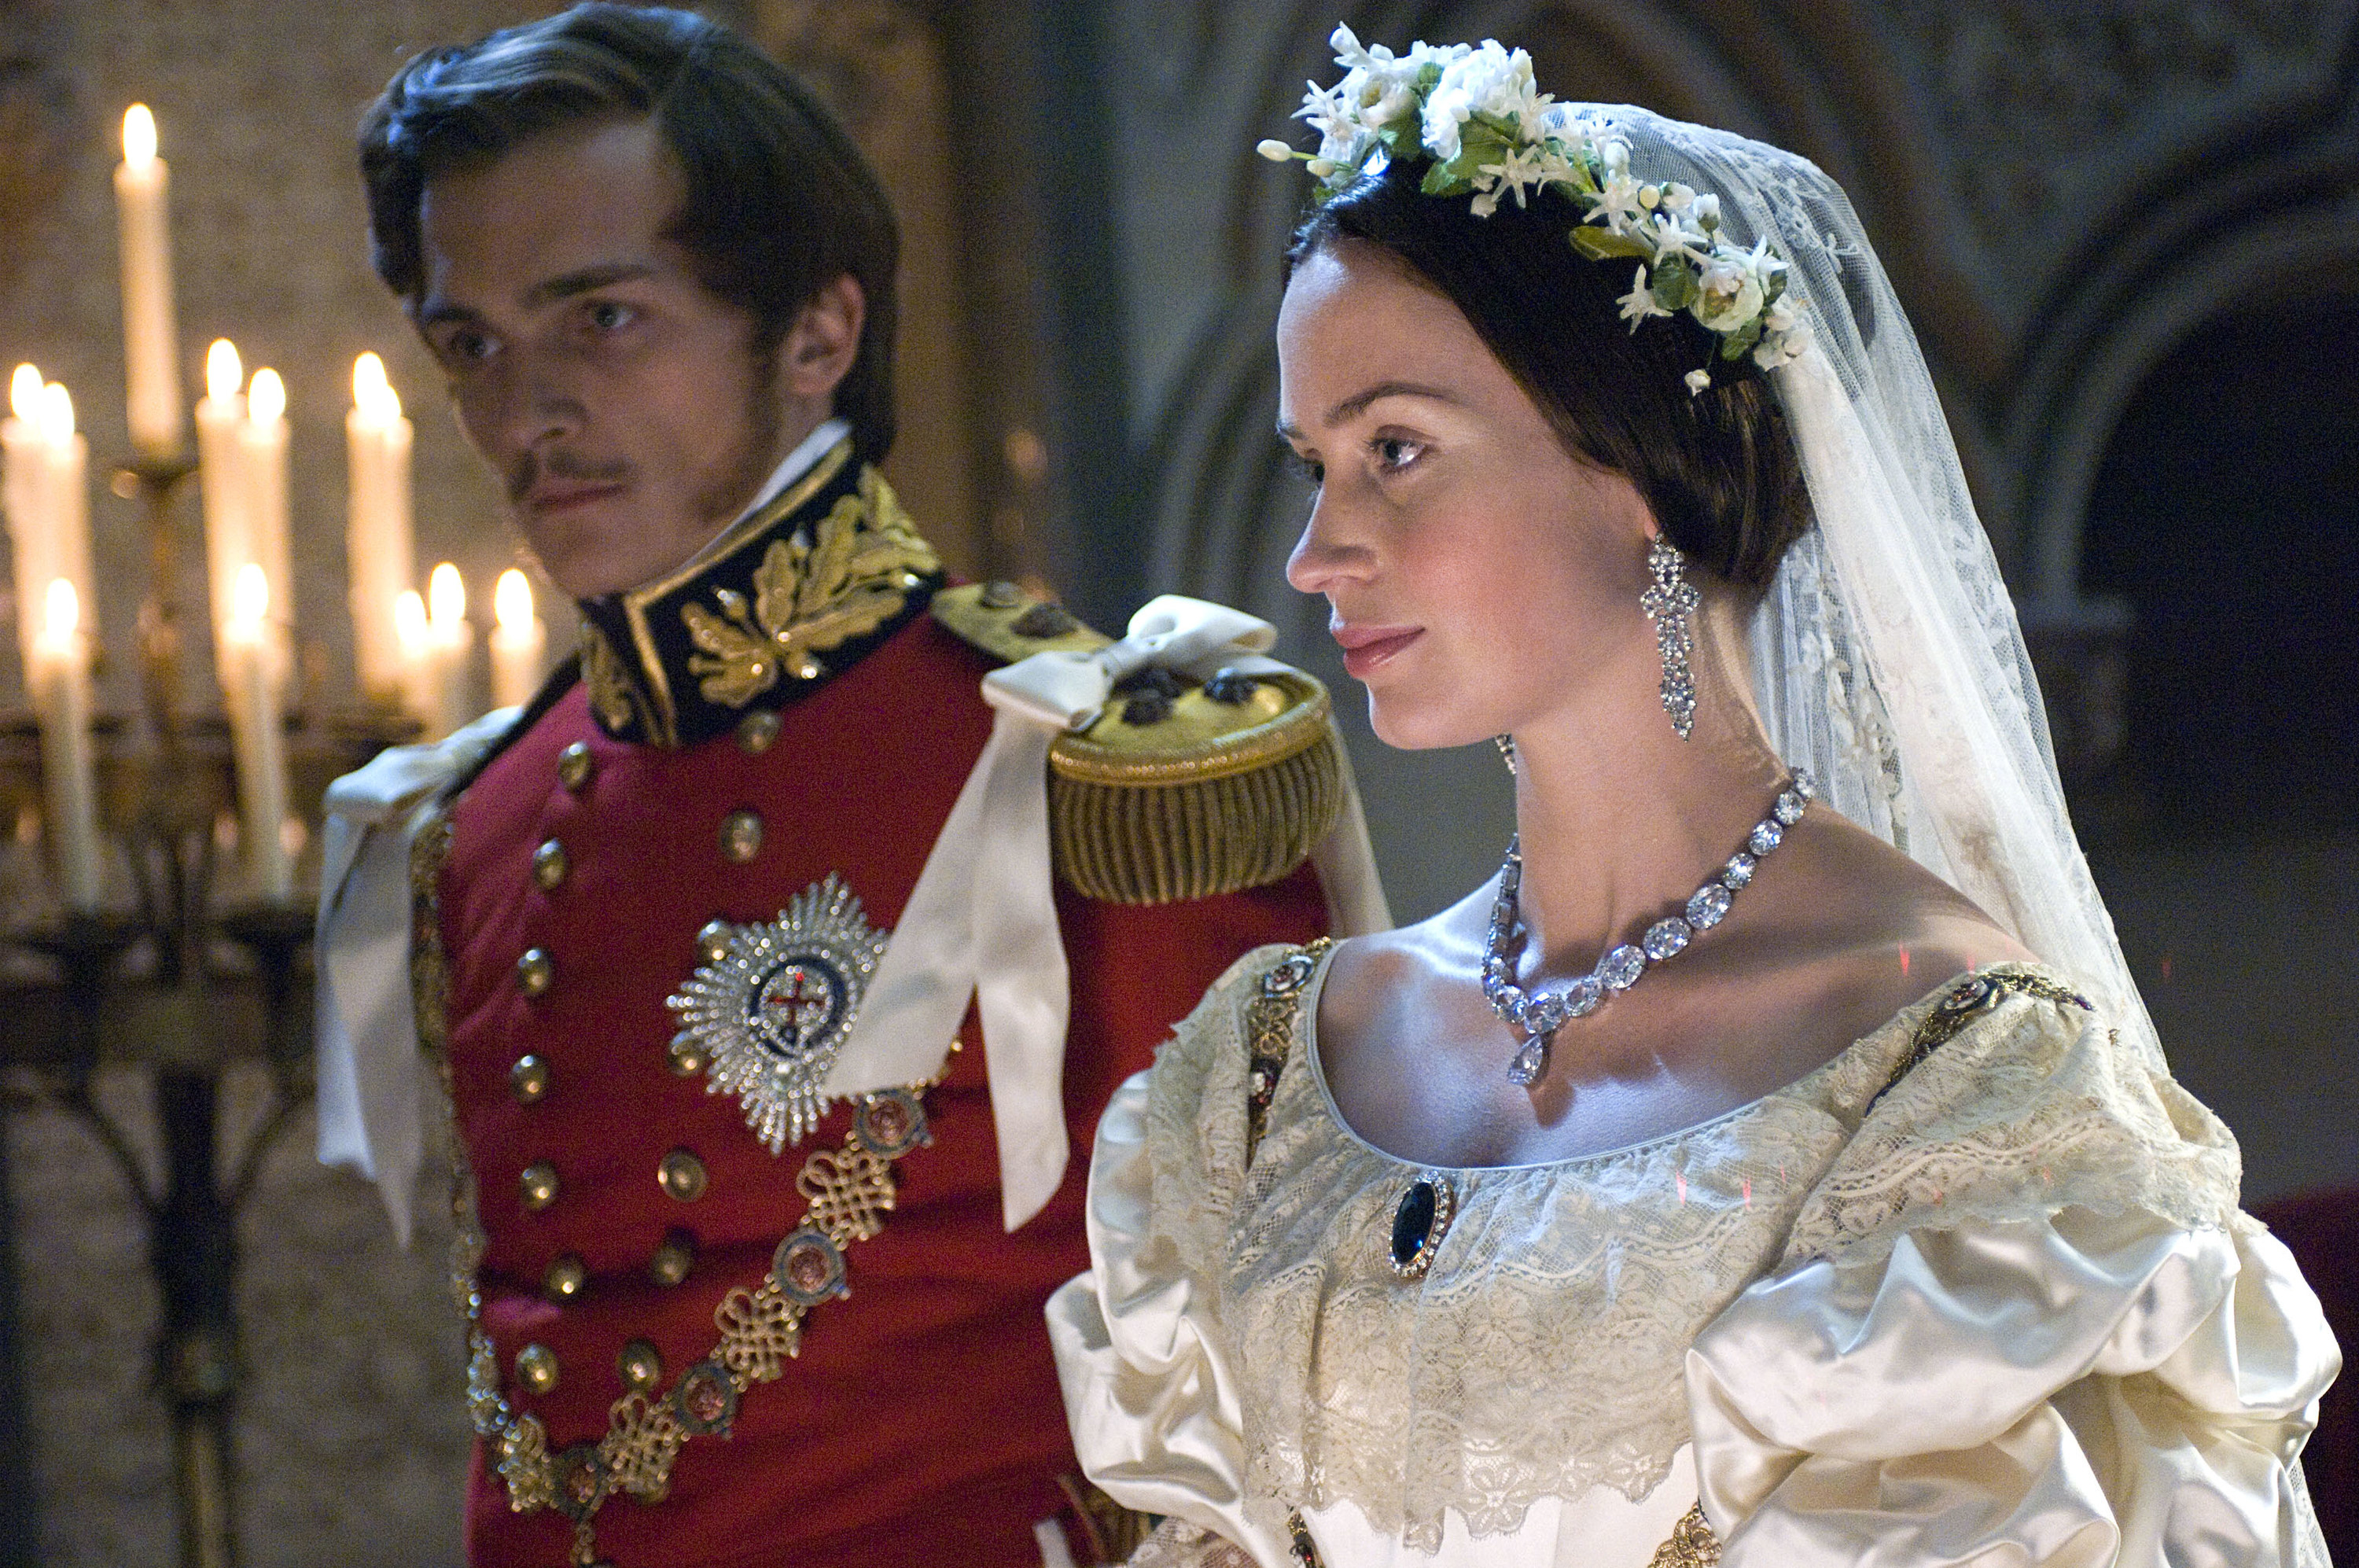 Queen Victoria and Prince Albert getting married in the movie